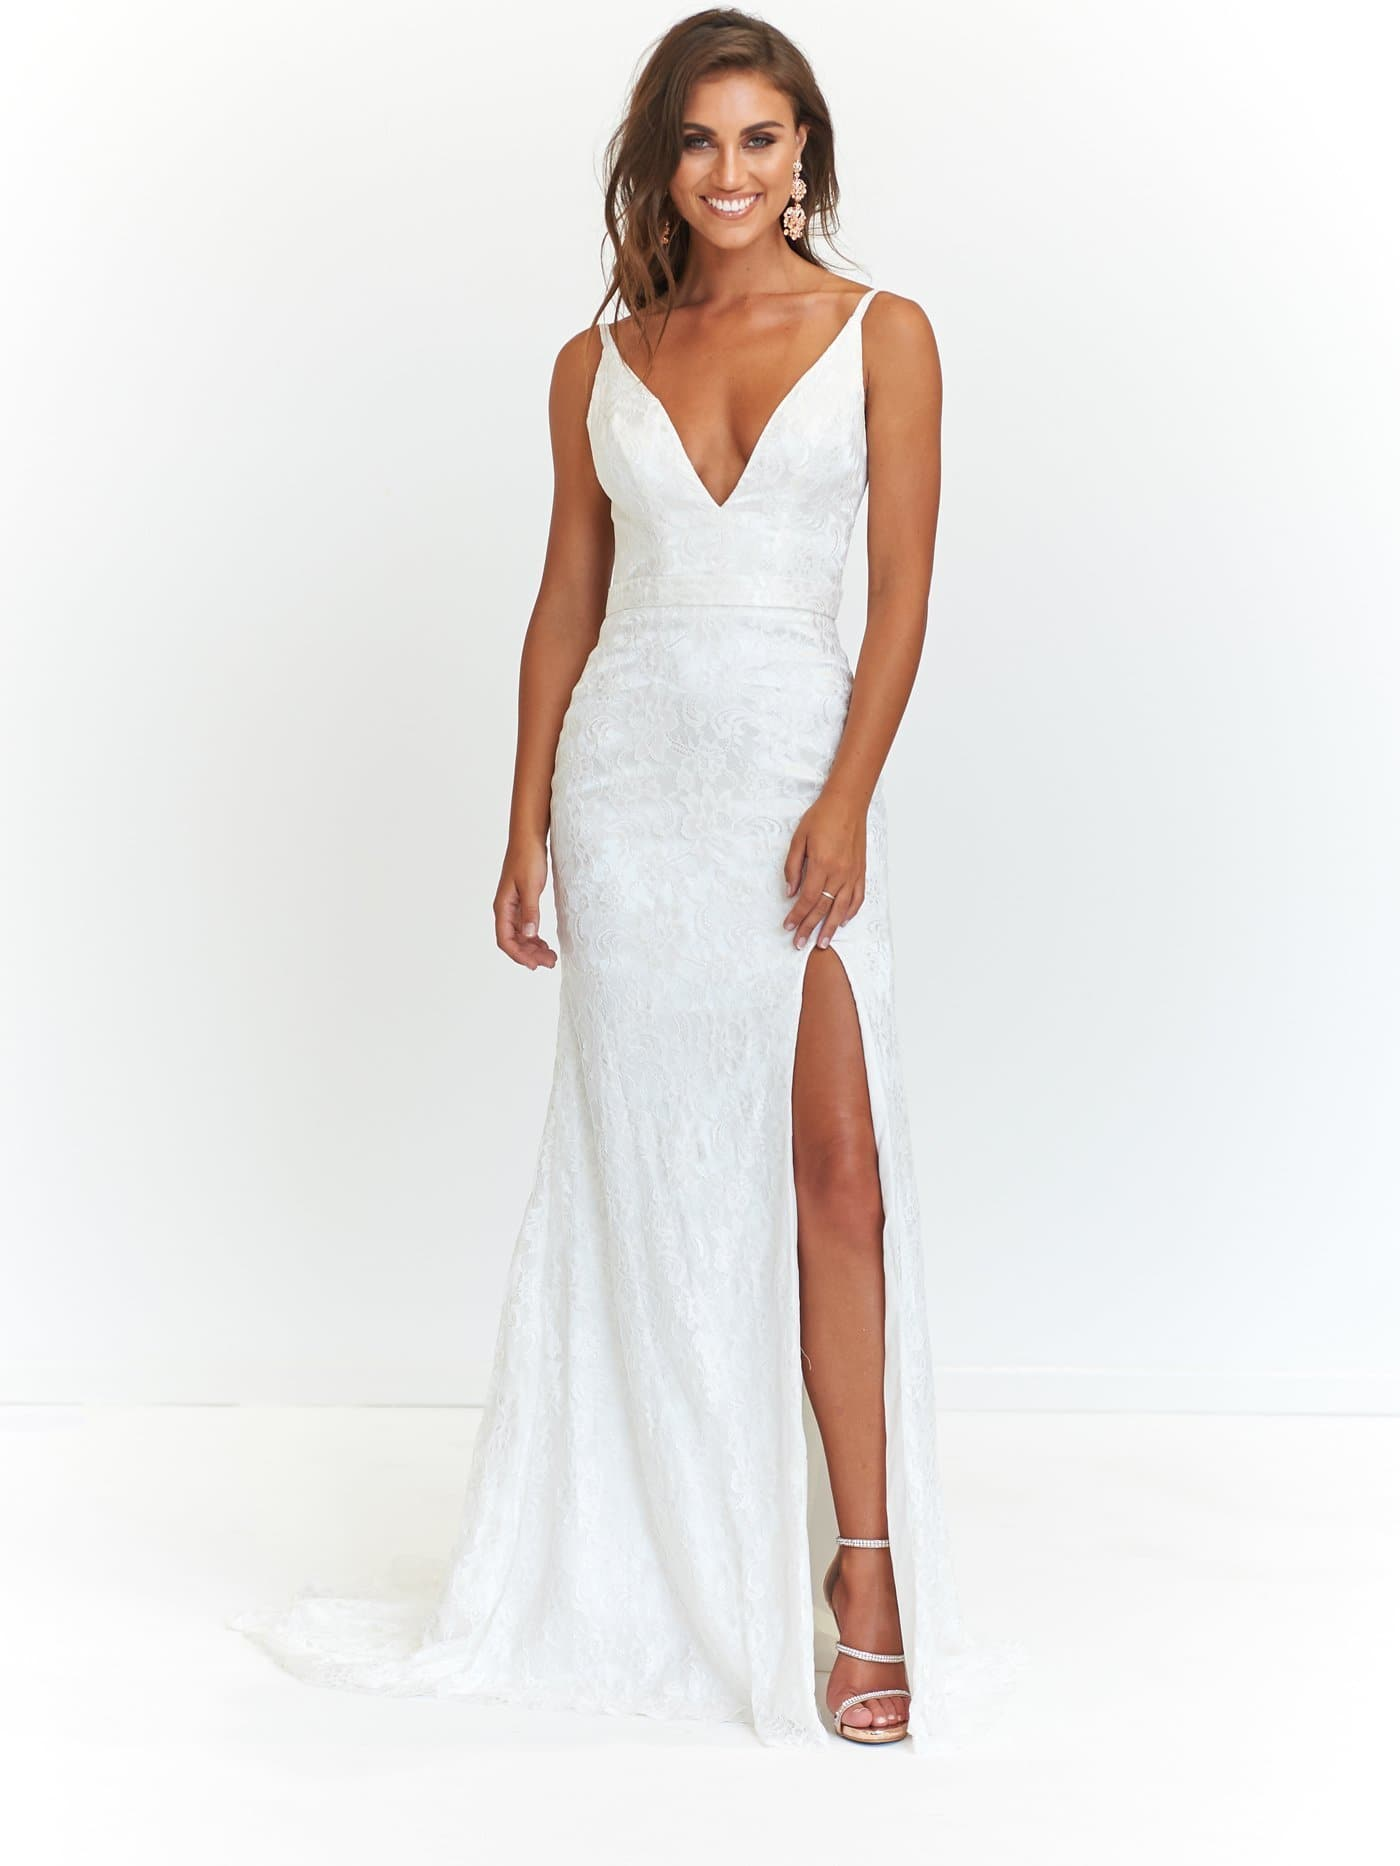 A&N Ayla Formal Dress - White Lace Backless Dress with Side Slit ...